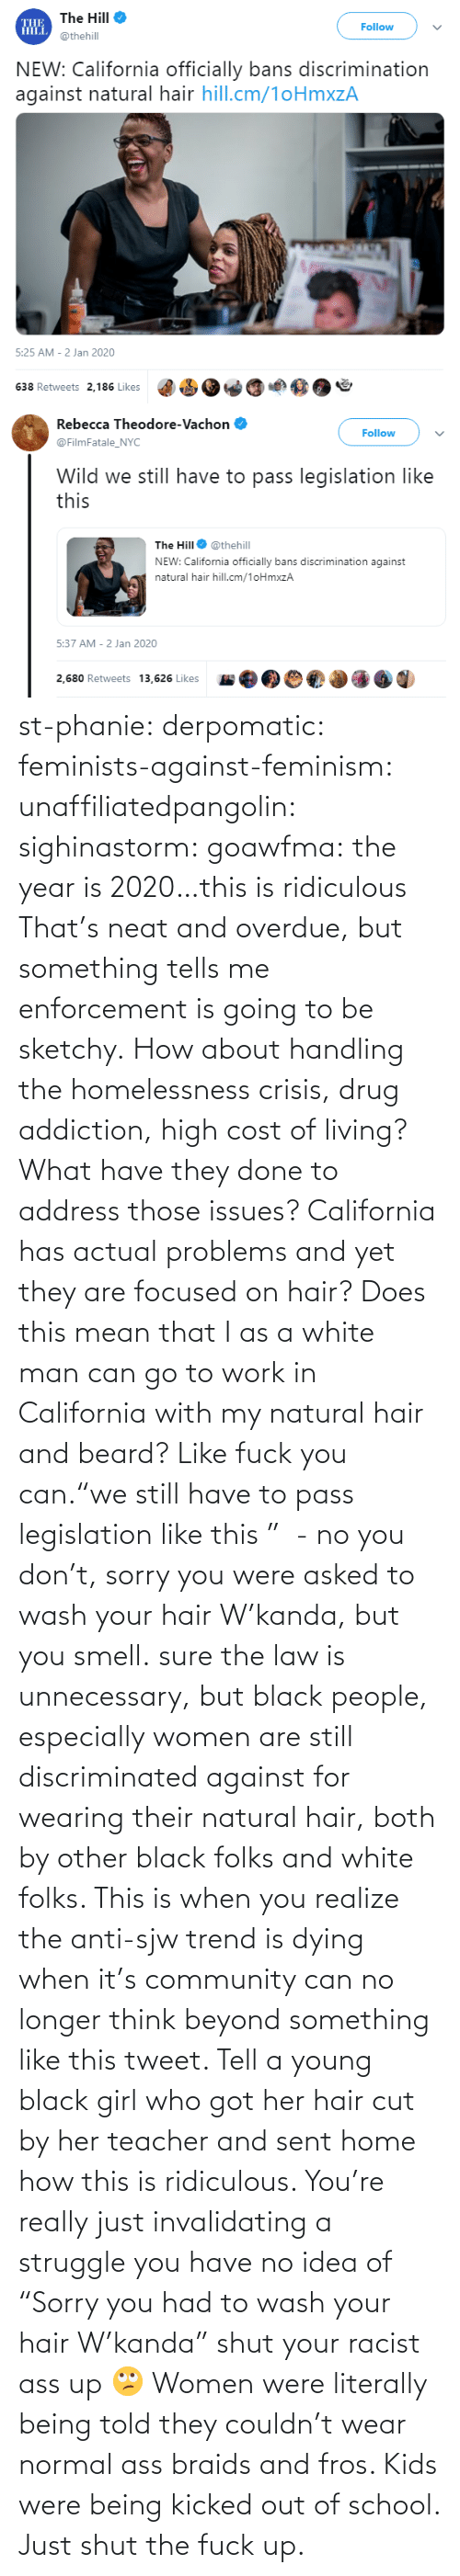 """Beard, Braids, and Community: st-phanie:  derpomatic:  feminists-against-feminism:  unaffiliatedpangolin:  sighinastorm:   goawfma: the year is 2020…this is ridiculous That's neat and overdue, but something tells me enforcement is going to be sketchy.    How about handling the homelessness crisis, drug addiction, high cost of living? What have they done to address those issues? California has actual problems and yet they are focused on hair?  Does this mean that I as a white man can go to work in California with my natural hair and beard?  Like fuck you can.""""we still have to pass legislation like this """" - no you don't, sorry you were asked to wash your hair W'kanda, but you smell.    sure the law is unnecessary, but black people, especially women are still discriminated against for wearing their natural hair, both by other black folks and white folks. This is when you realize the anti-sjw trend is dying when it's community can no longer think beyond something like this tweet. Tell a young black girl who got her hair cut by her teacher and sent home how this is ridiculous. You're really just invalidating a struggle you have no idea of   """"Sorry you had to wash your hair W'kanda"""" shut your racist ass up 🙄 Women were literally being told they couldn't wear normal ass braids and fros. Kids were being kicked out of school. Just shut the fuck up."""